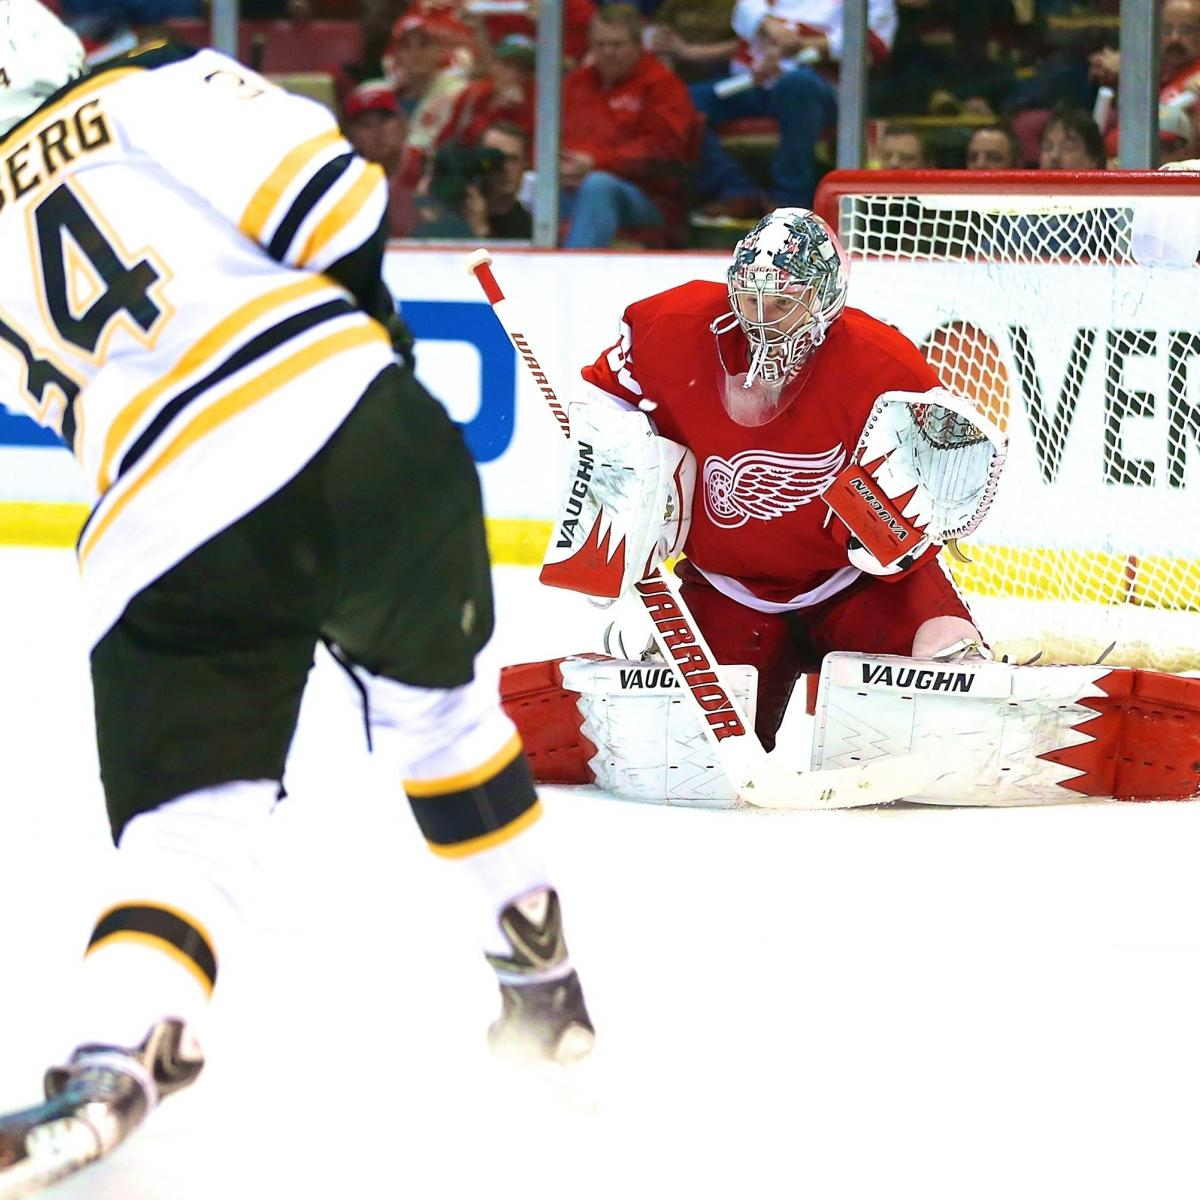 Boston Bruins Vs. Detroit Red Wings Game 4: Live Score And